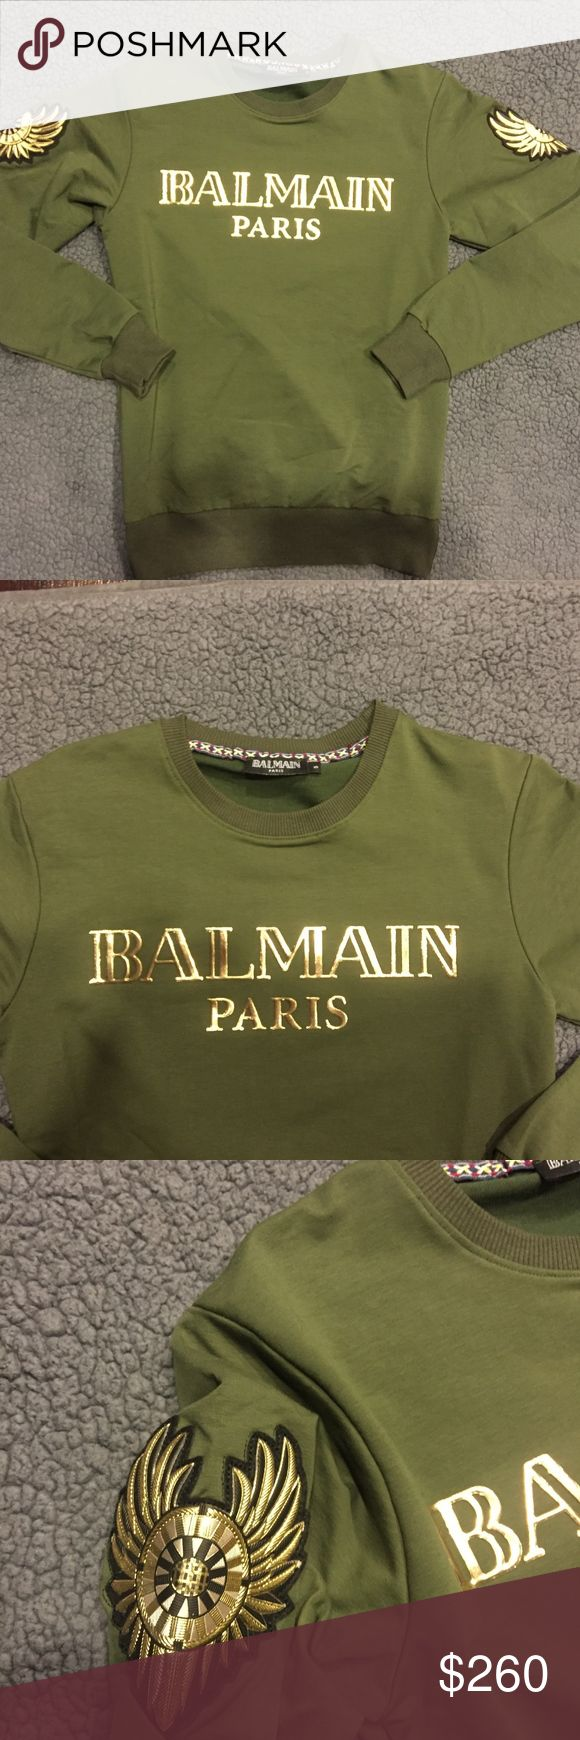 Balmain Brand new Balmain sweater without tags Balmain Sweaters